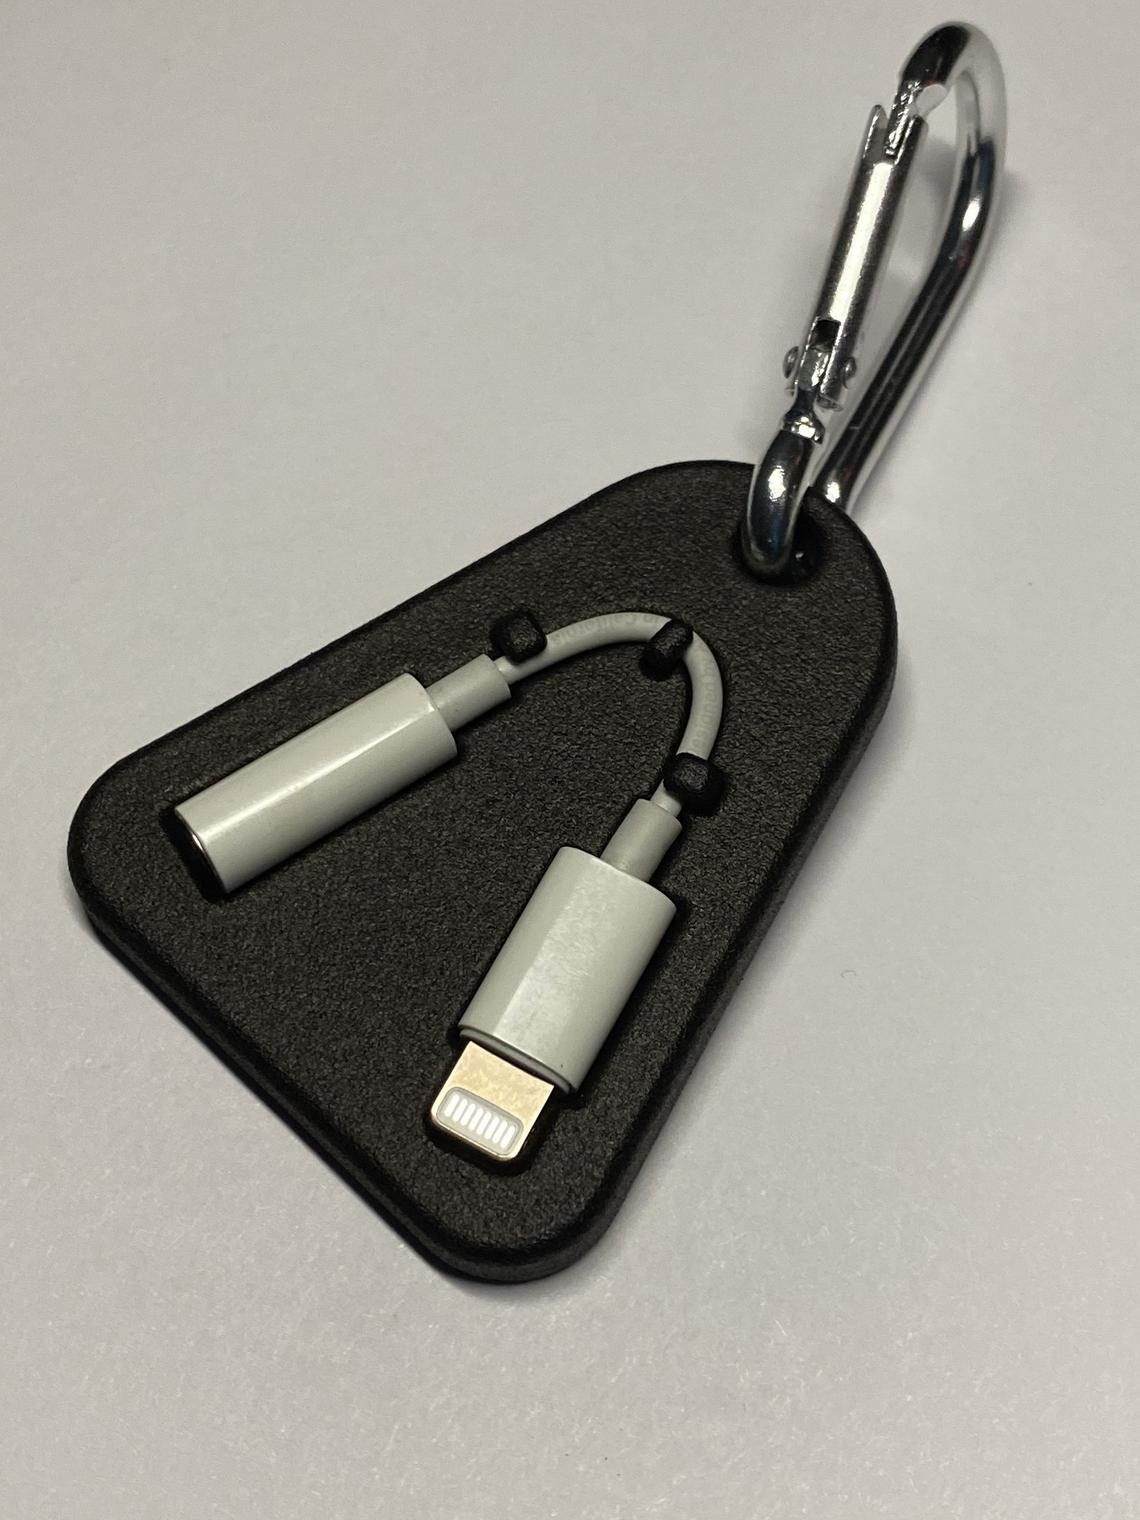 keychain with phone adapter